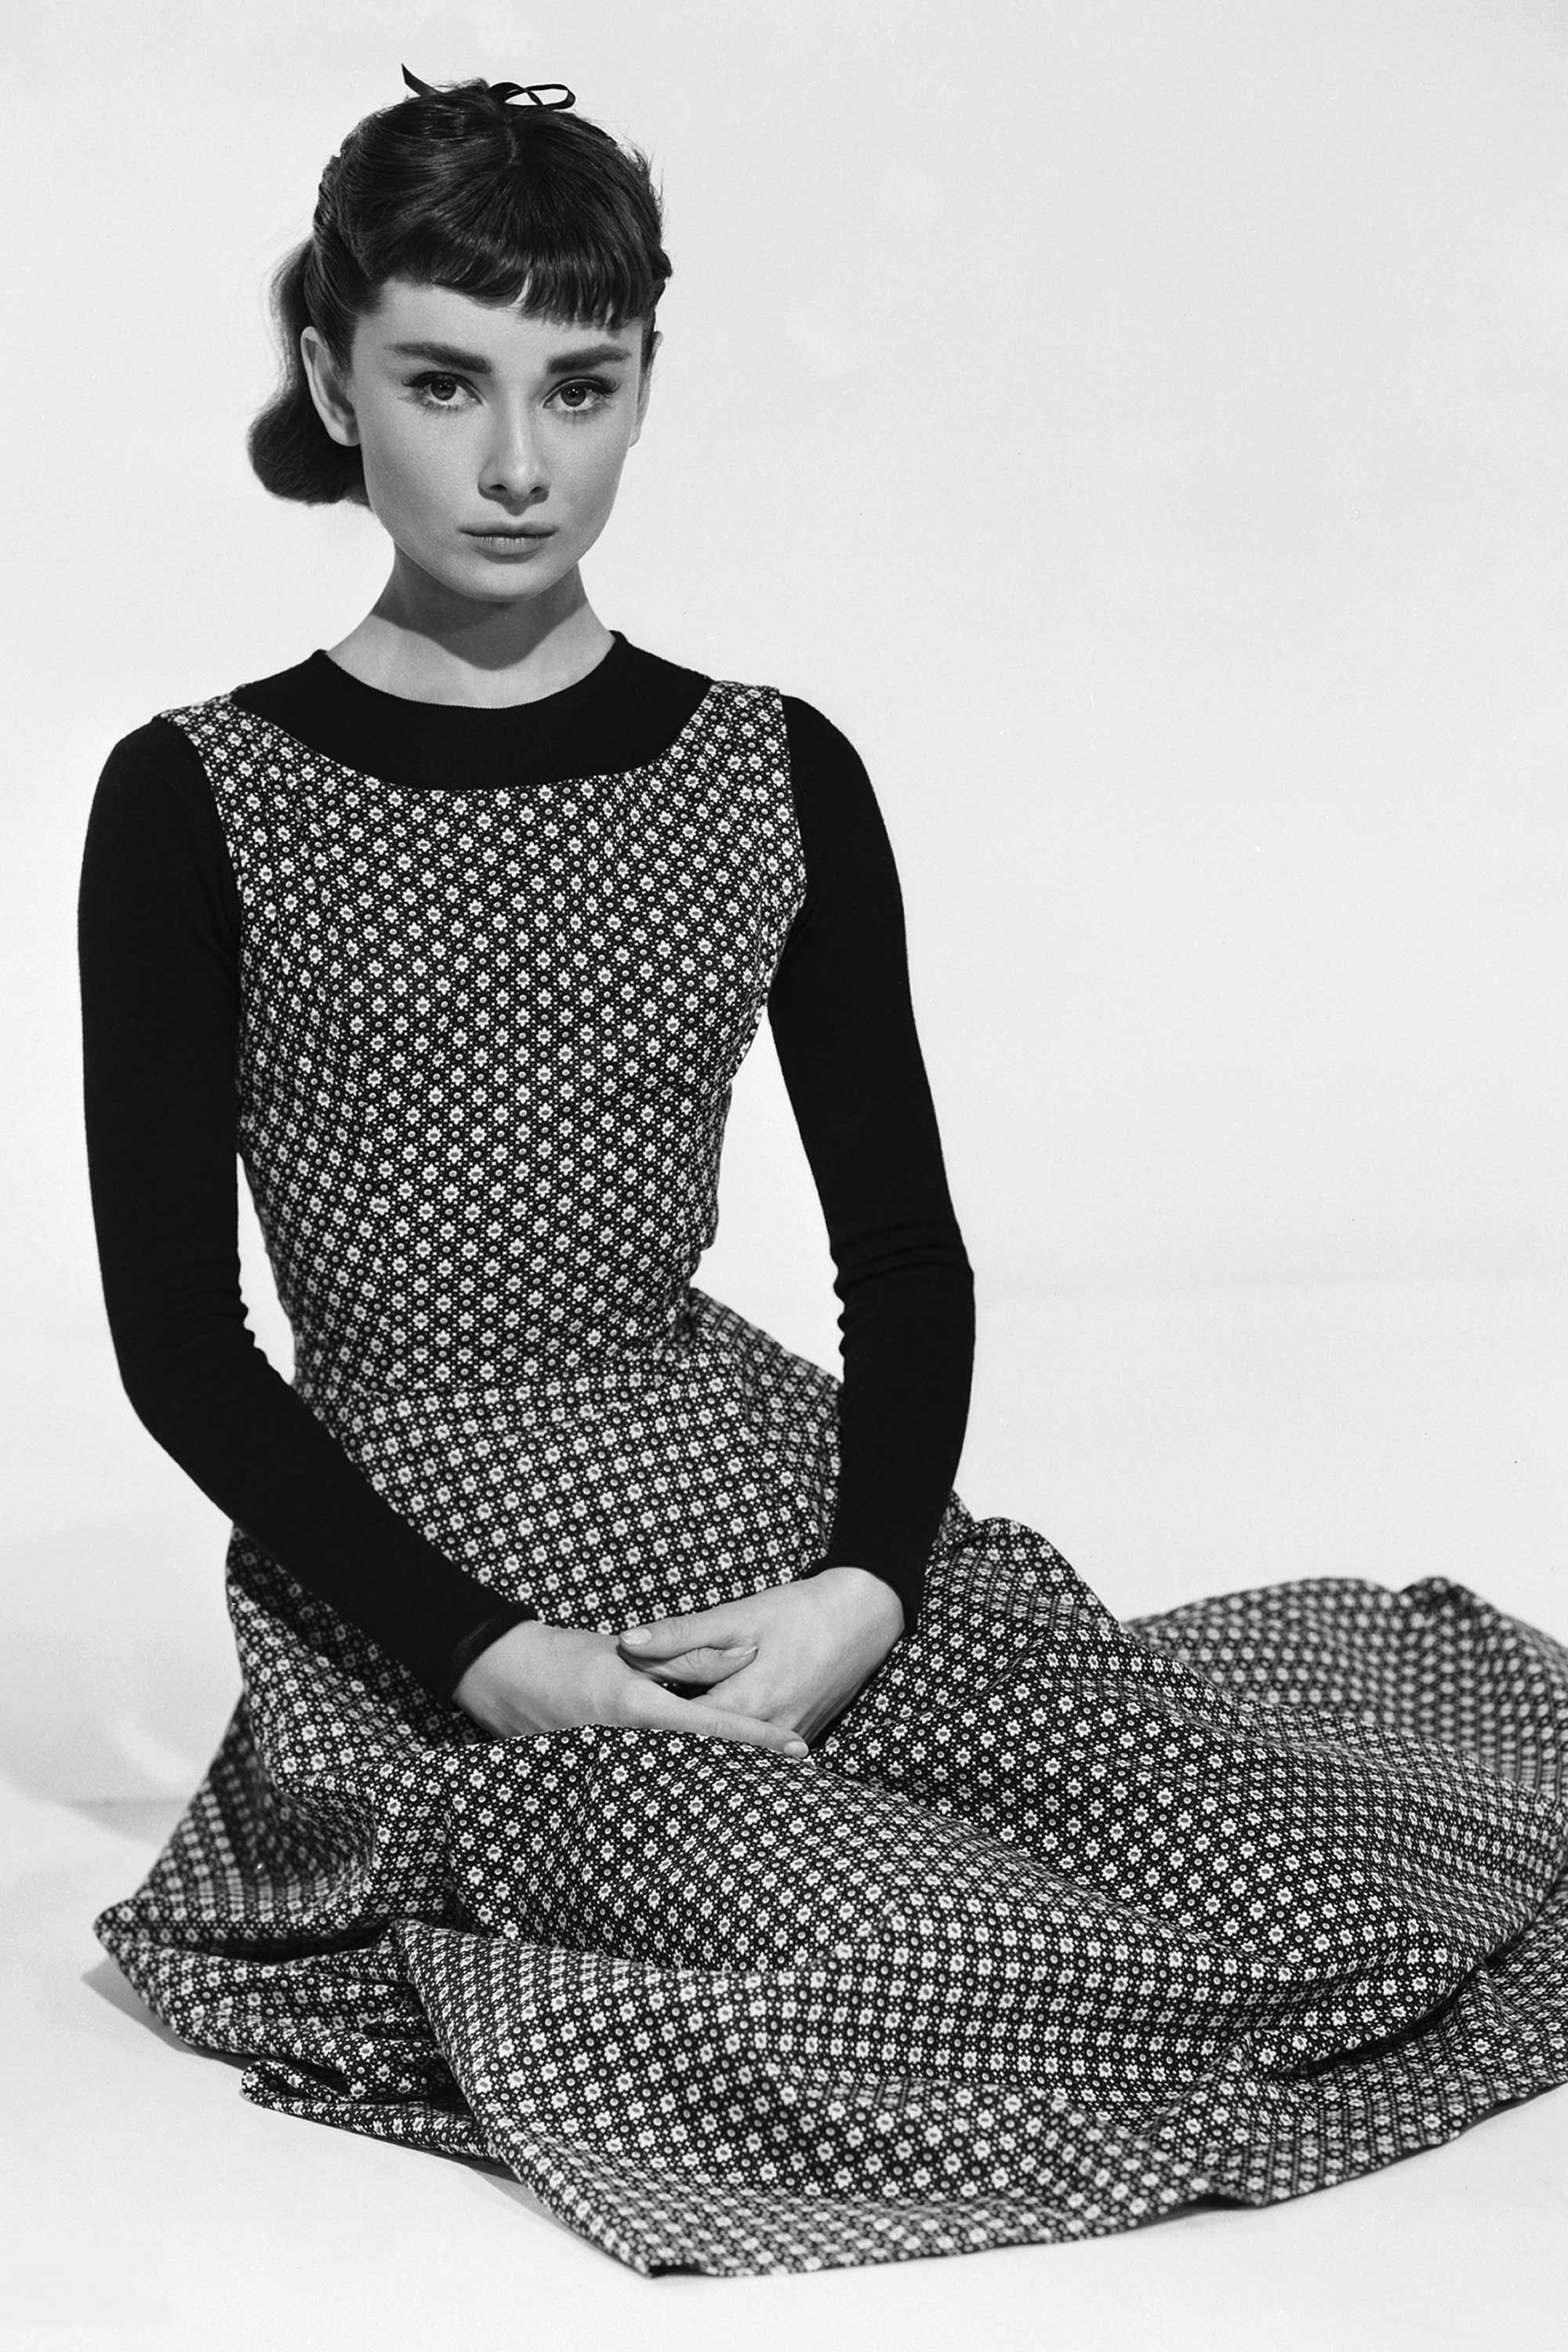 Communication on this topic: Audrey Hepburn: Beyond the Screen, audrey-hepburn-beyond-the-screen/